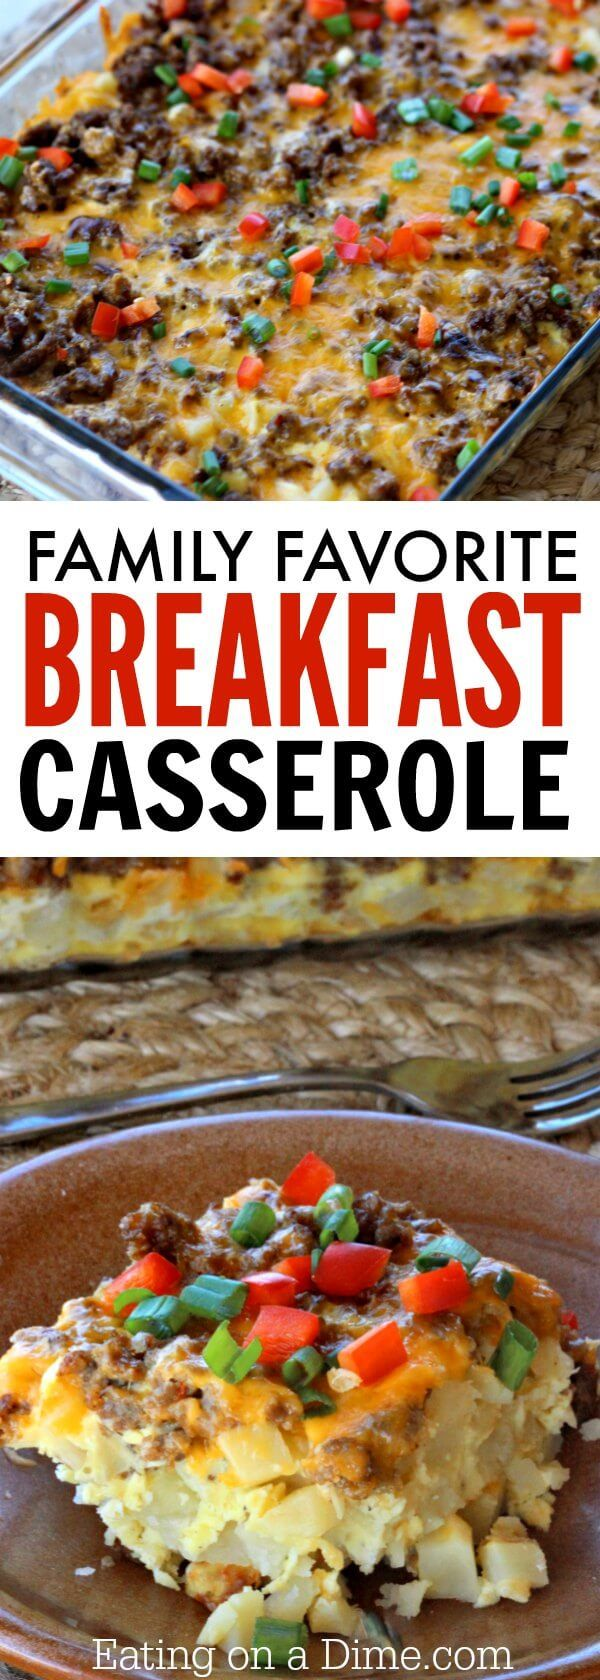 Try this Easy Sausage and Egg Breakfast Casserole Recipe today! The simple ingredients make this simple sausage breakfast casserole the best!